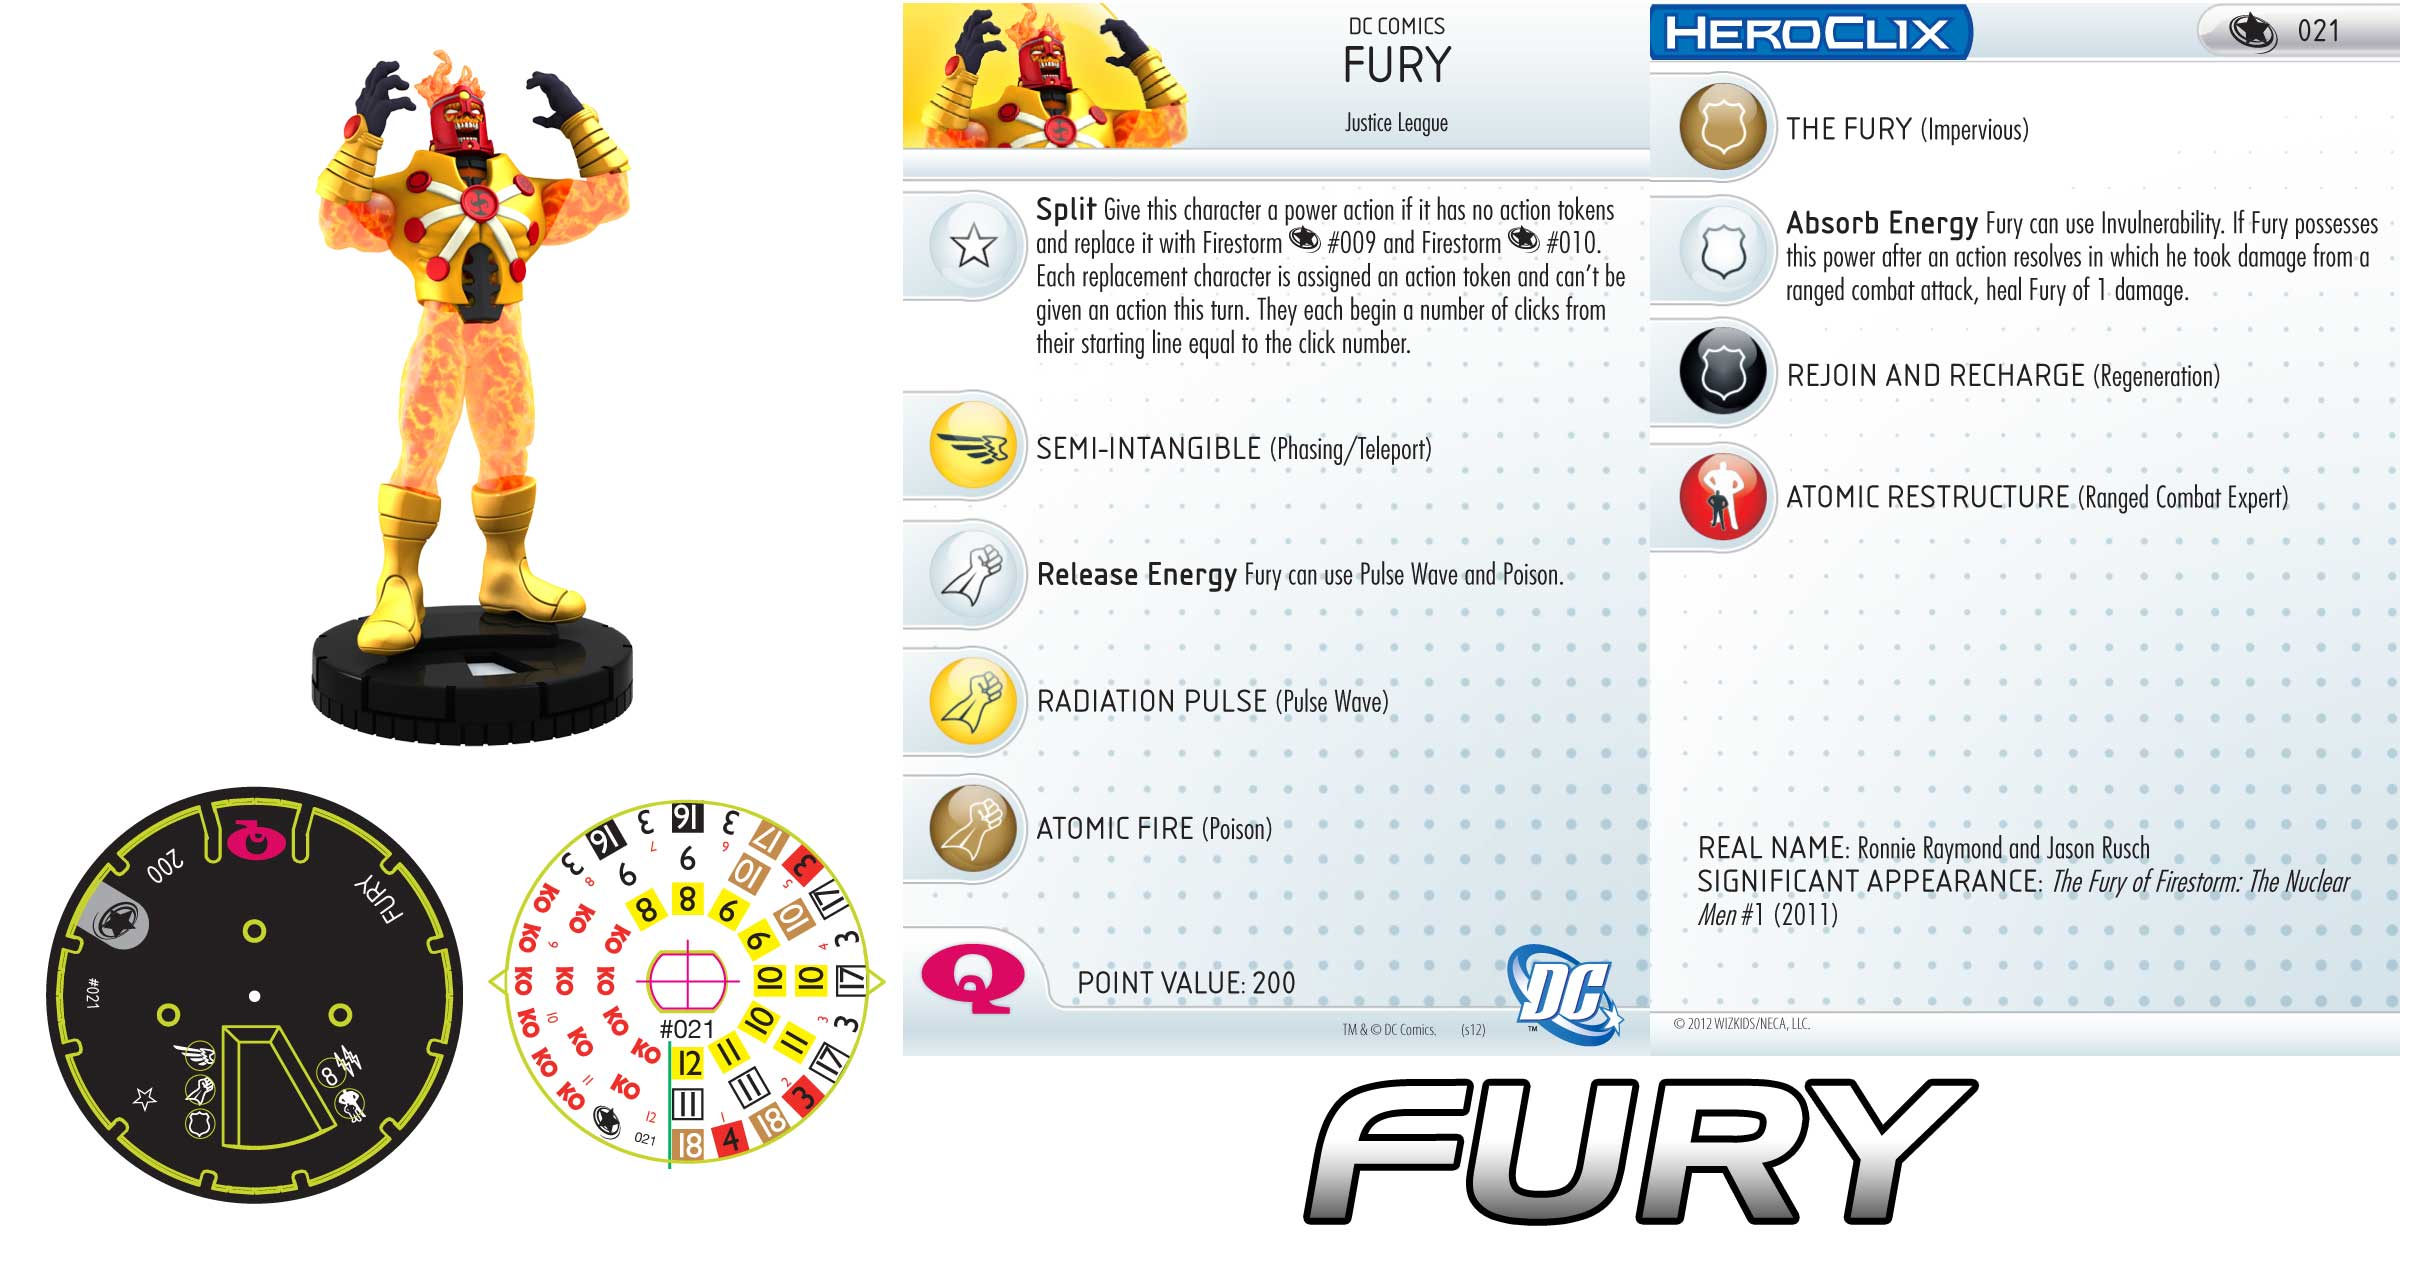 Options trading business entity heroclix